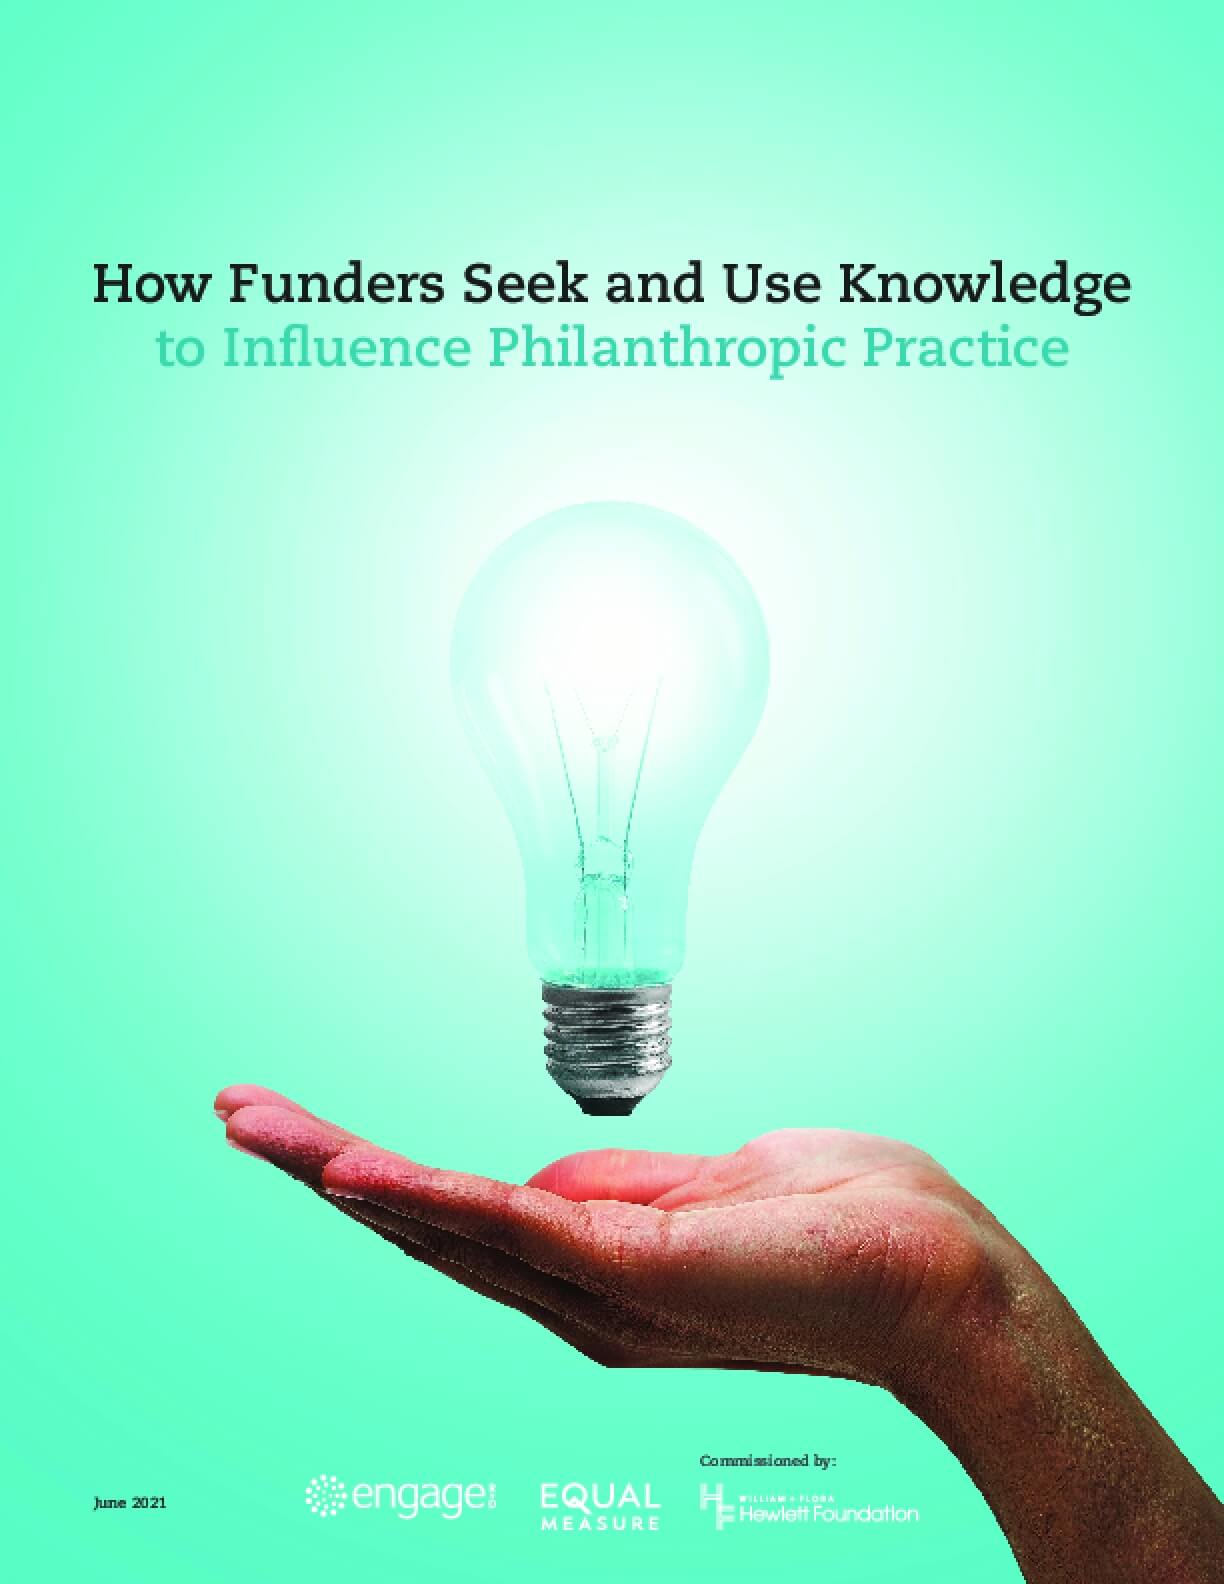 How Funders Seek and Use Knowledge to Influence Philanthropic Practice